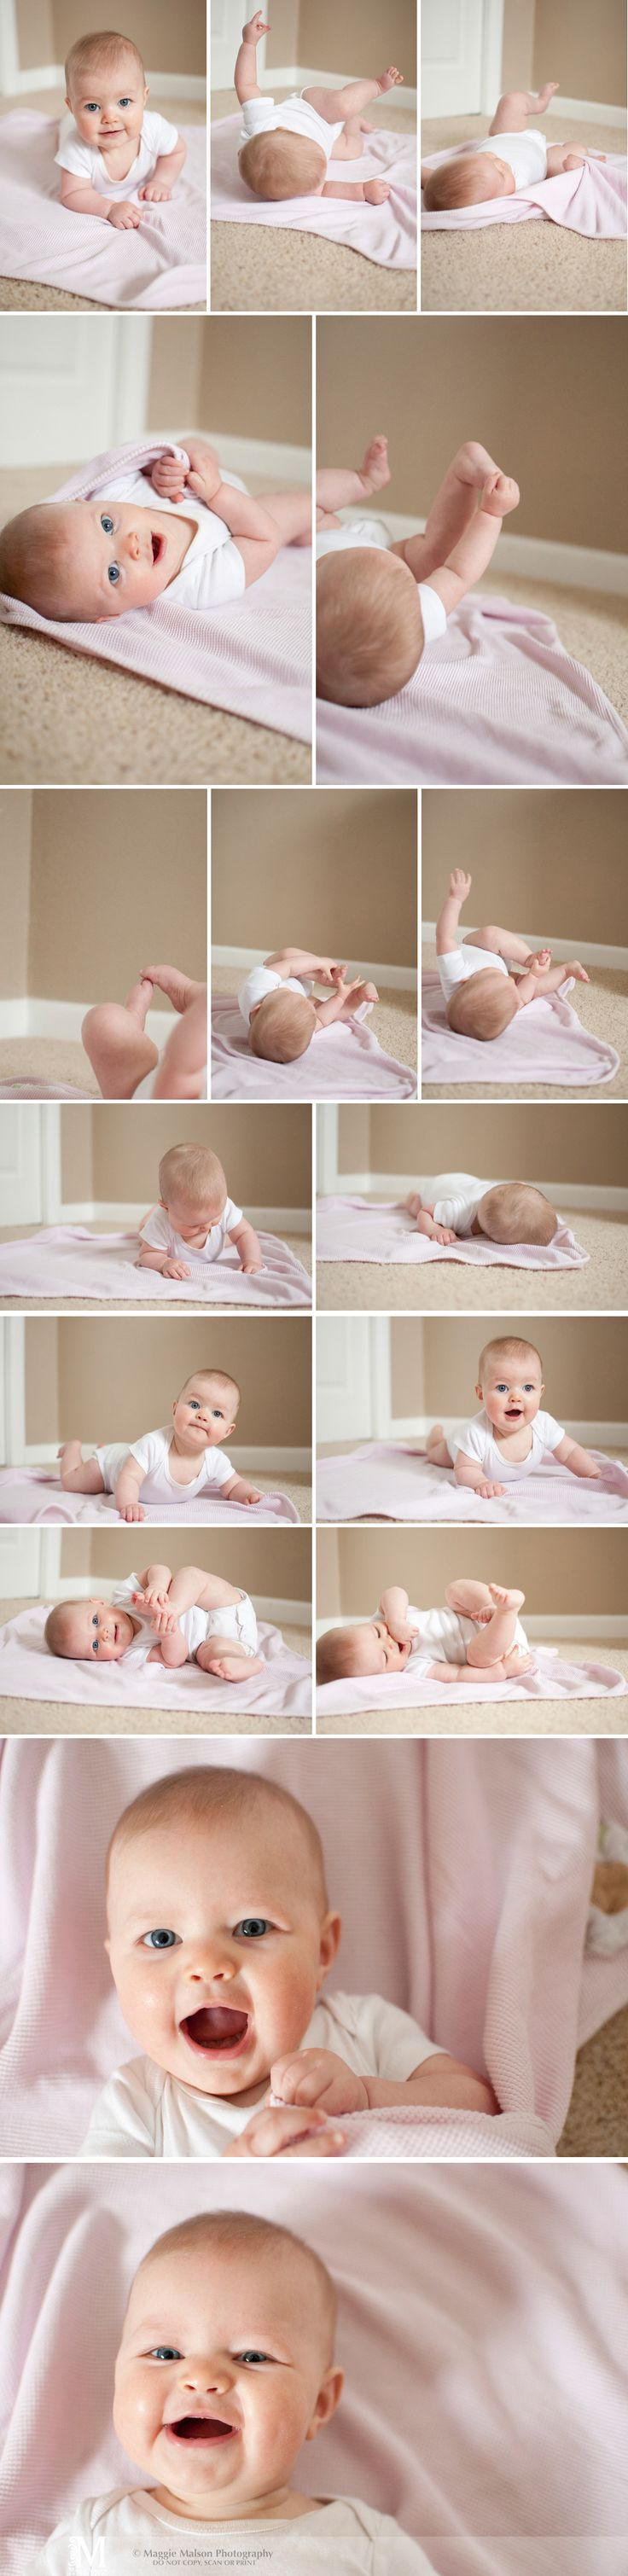 Your Story Albums by Maggie Malson Photography ~ Capturing Your Lifestyle | 4/9 | Lifestyle portrait stories of babies, children, teens and families